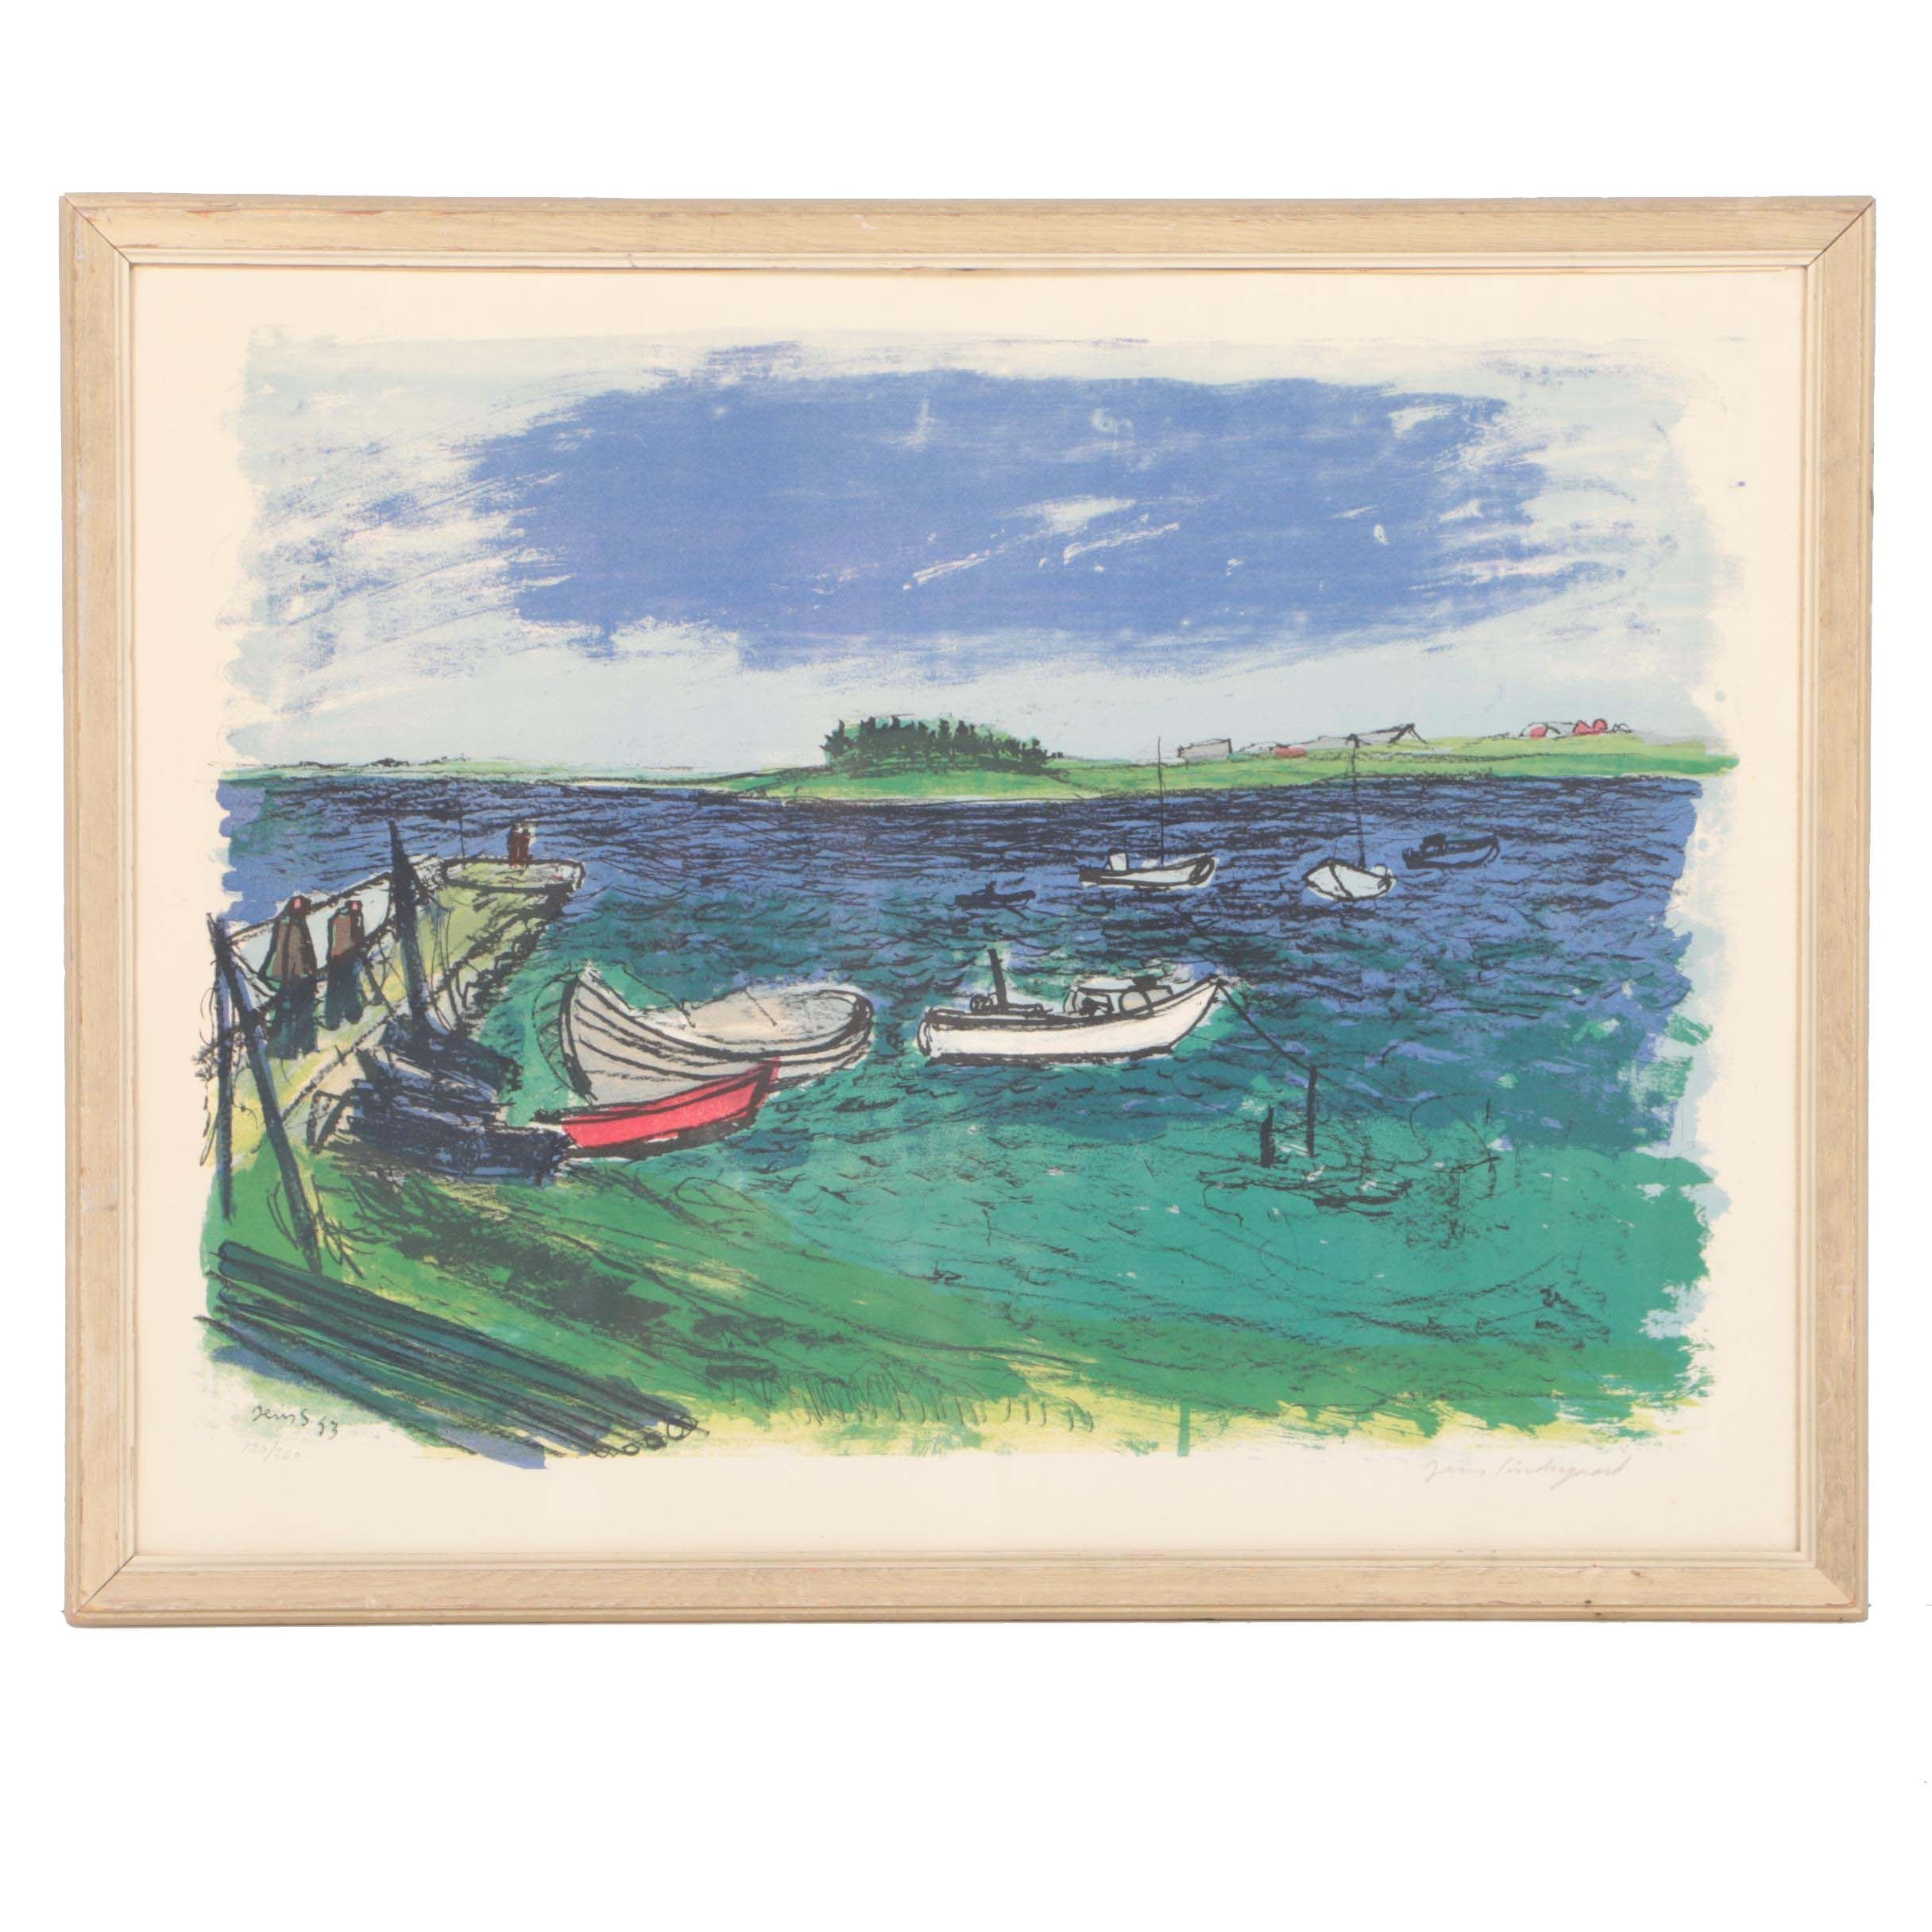 Limited Edition Lithograph by Jens Sondergaard of a Harbor in Denmark